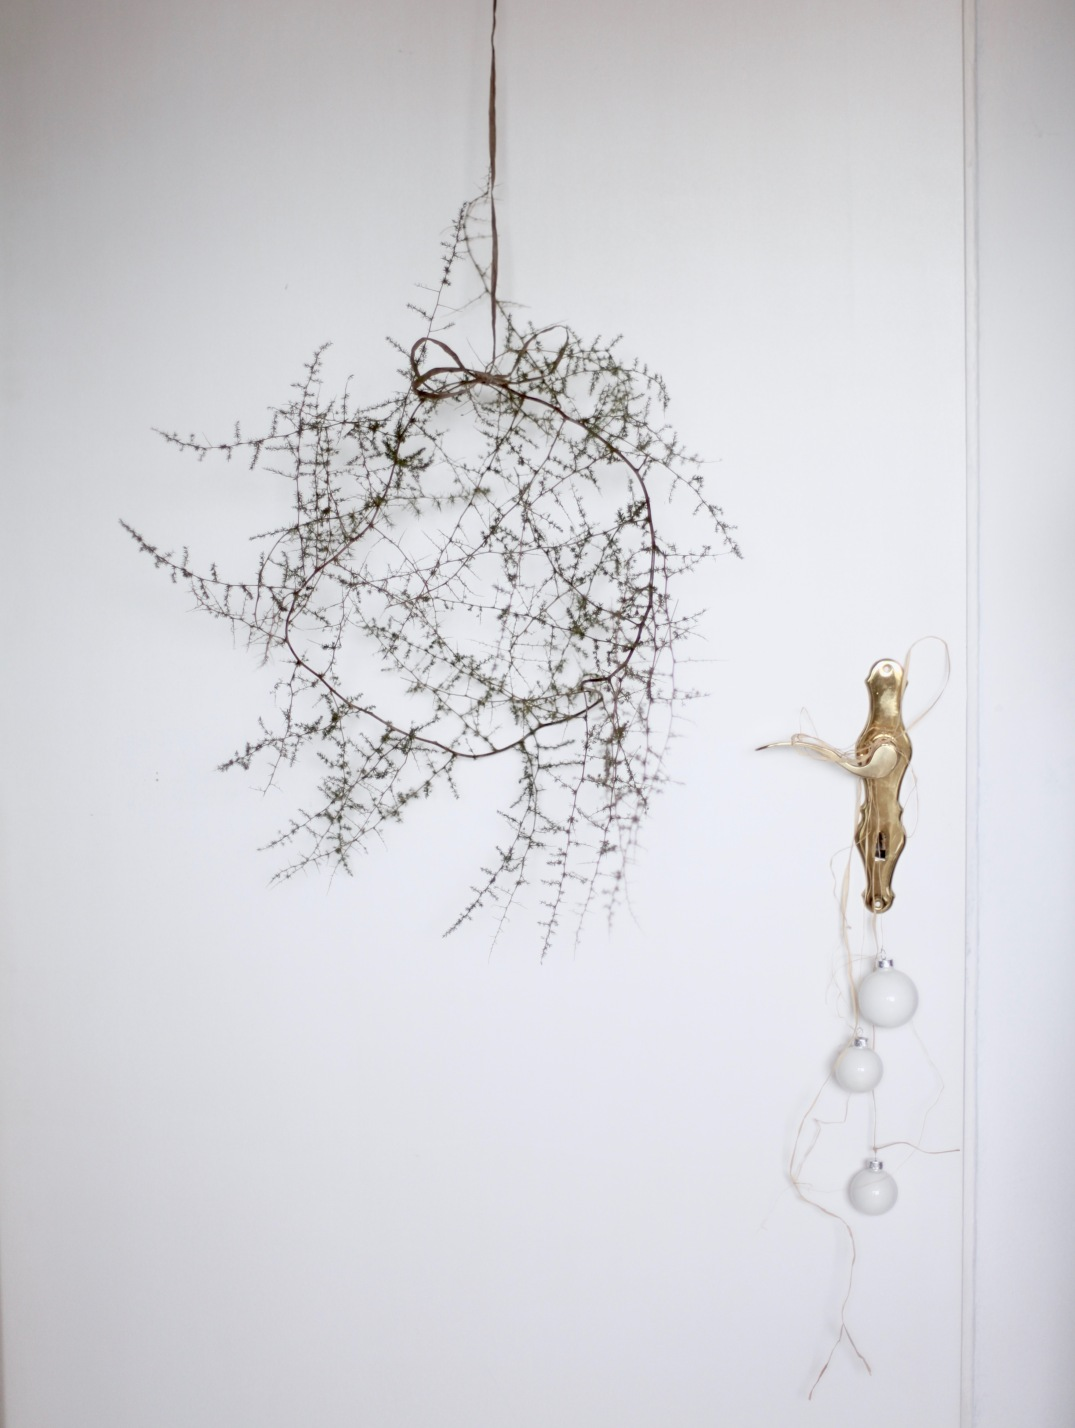 Minimalistic Christmas wreath via Anastasia Benko with white baubles